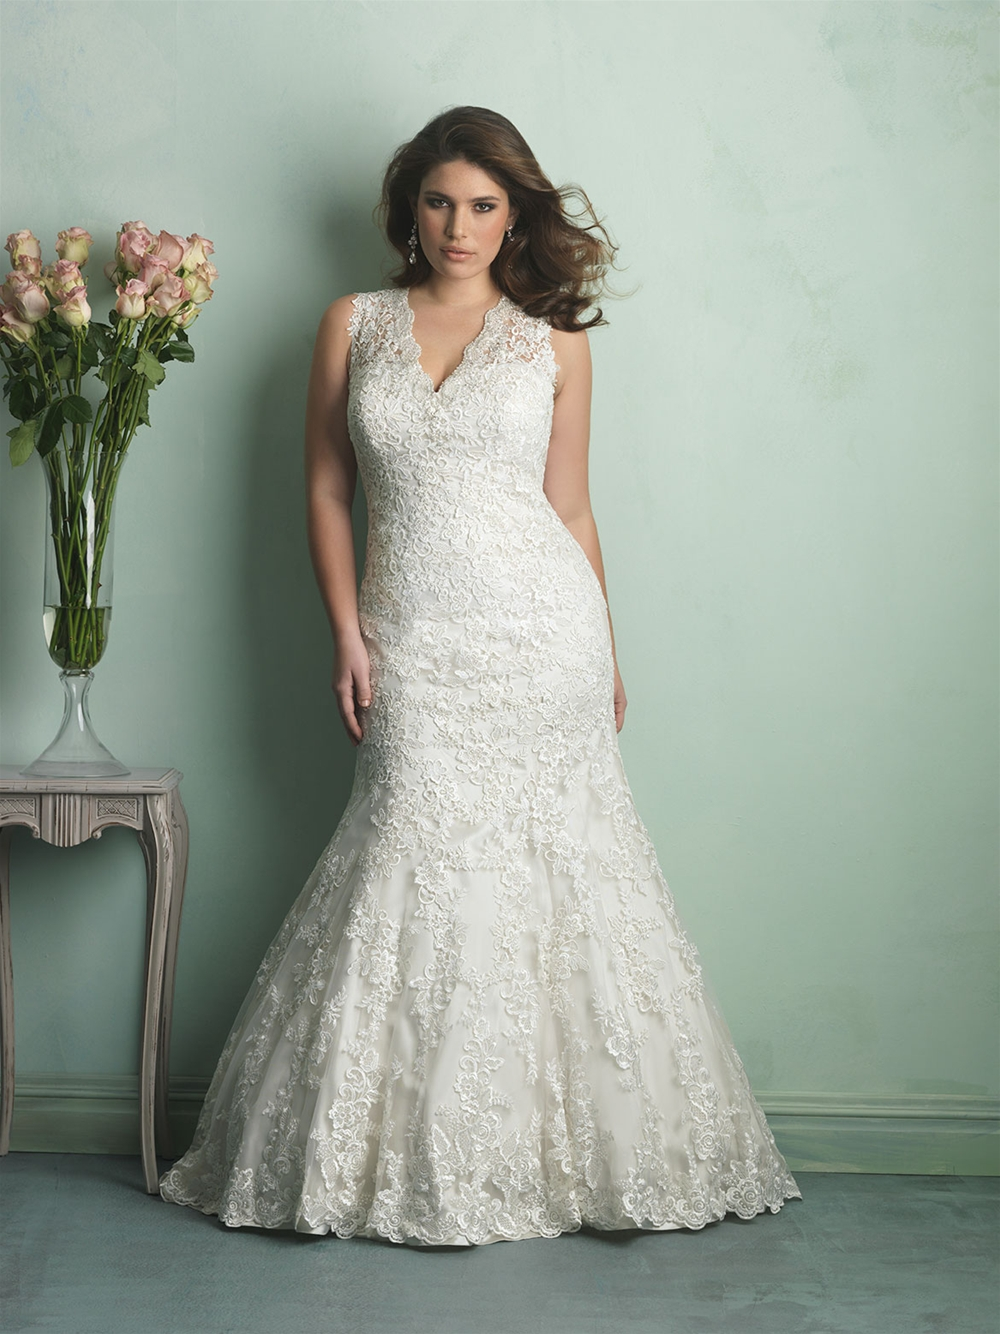 Here's just one of our beautiful plus size wedding gowns that will be on sample sale!